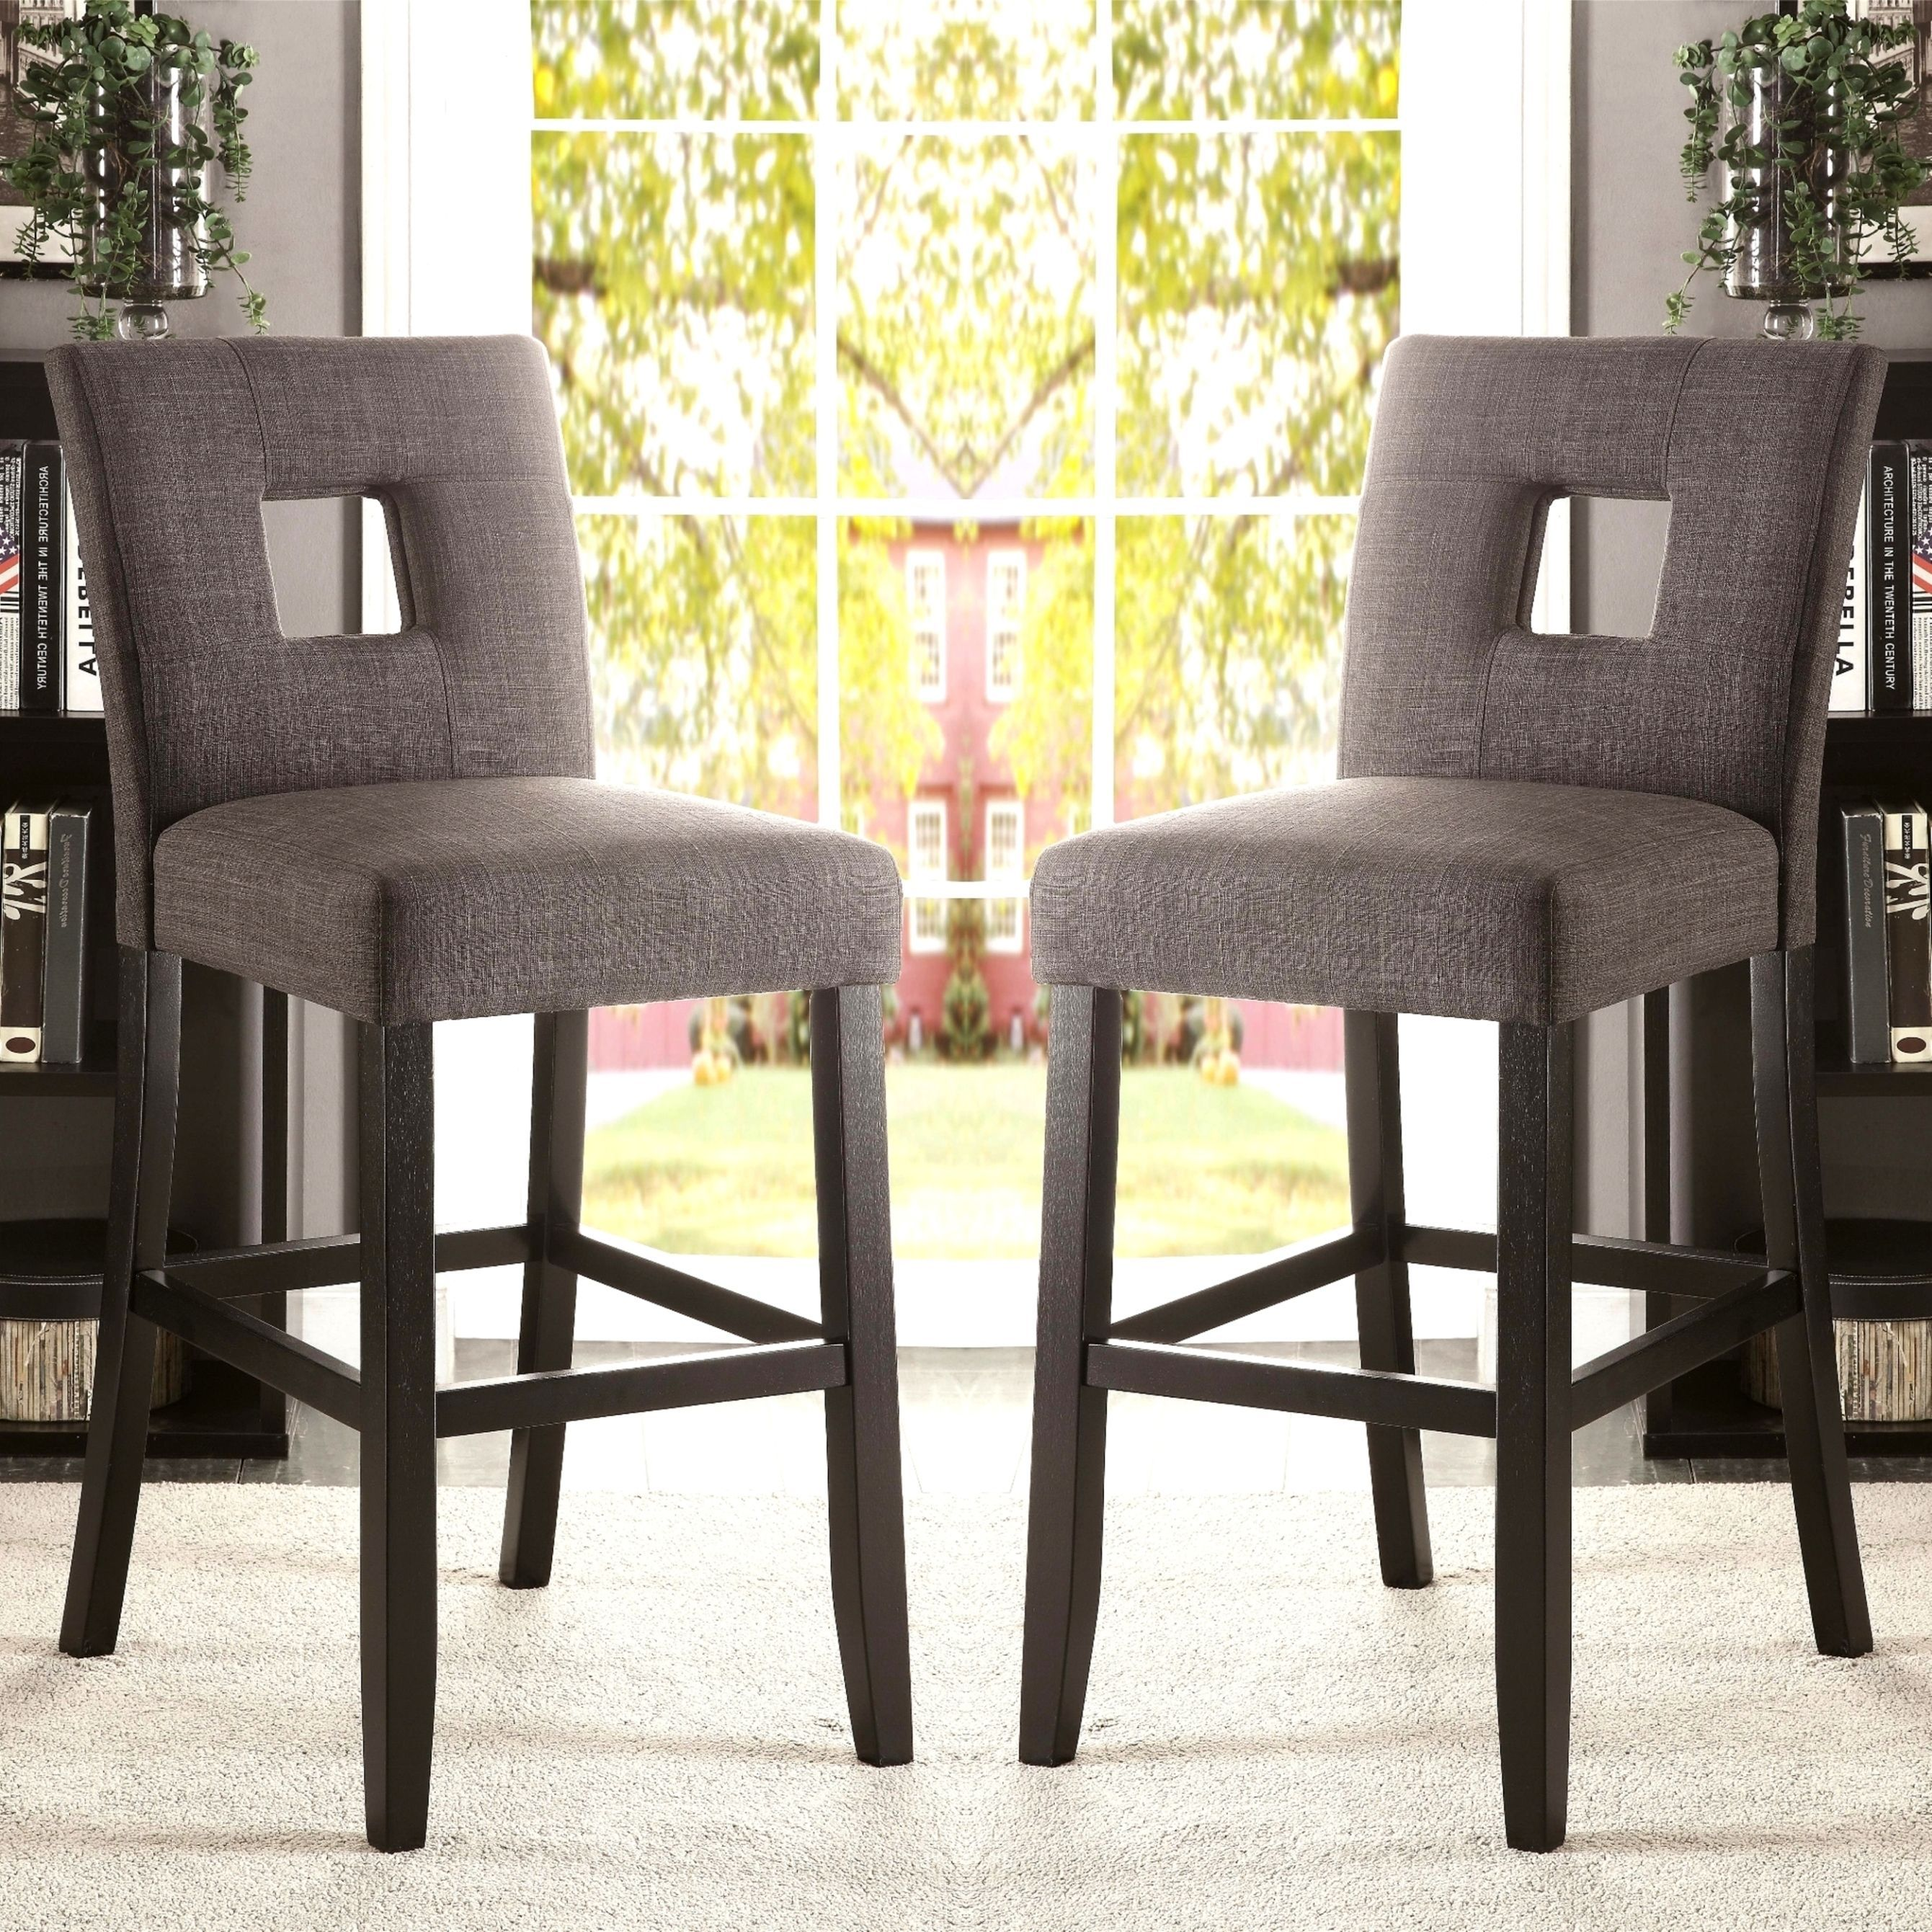 stools pair tone cutout stool two hampstead iv bar upholstered